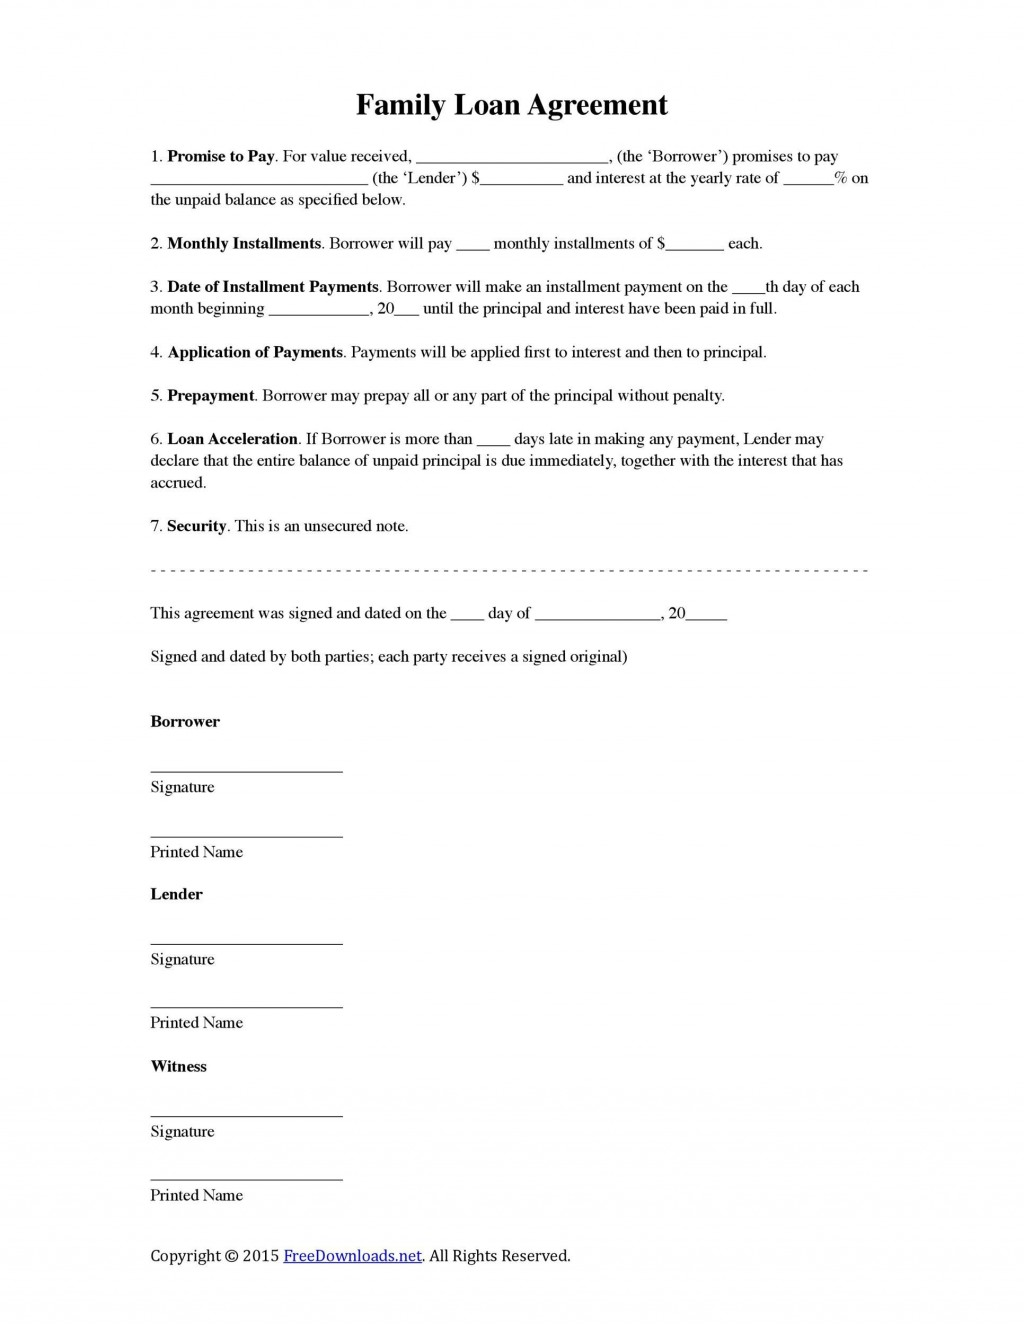 009 Remarkable Family Loan Agreement Template Free Uk Inspiration  SimpleLarge